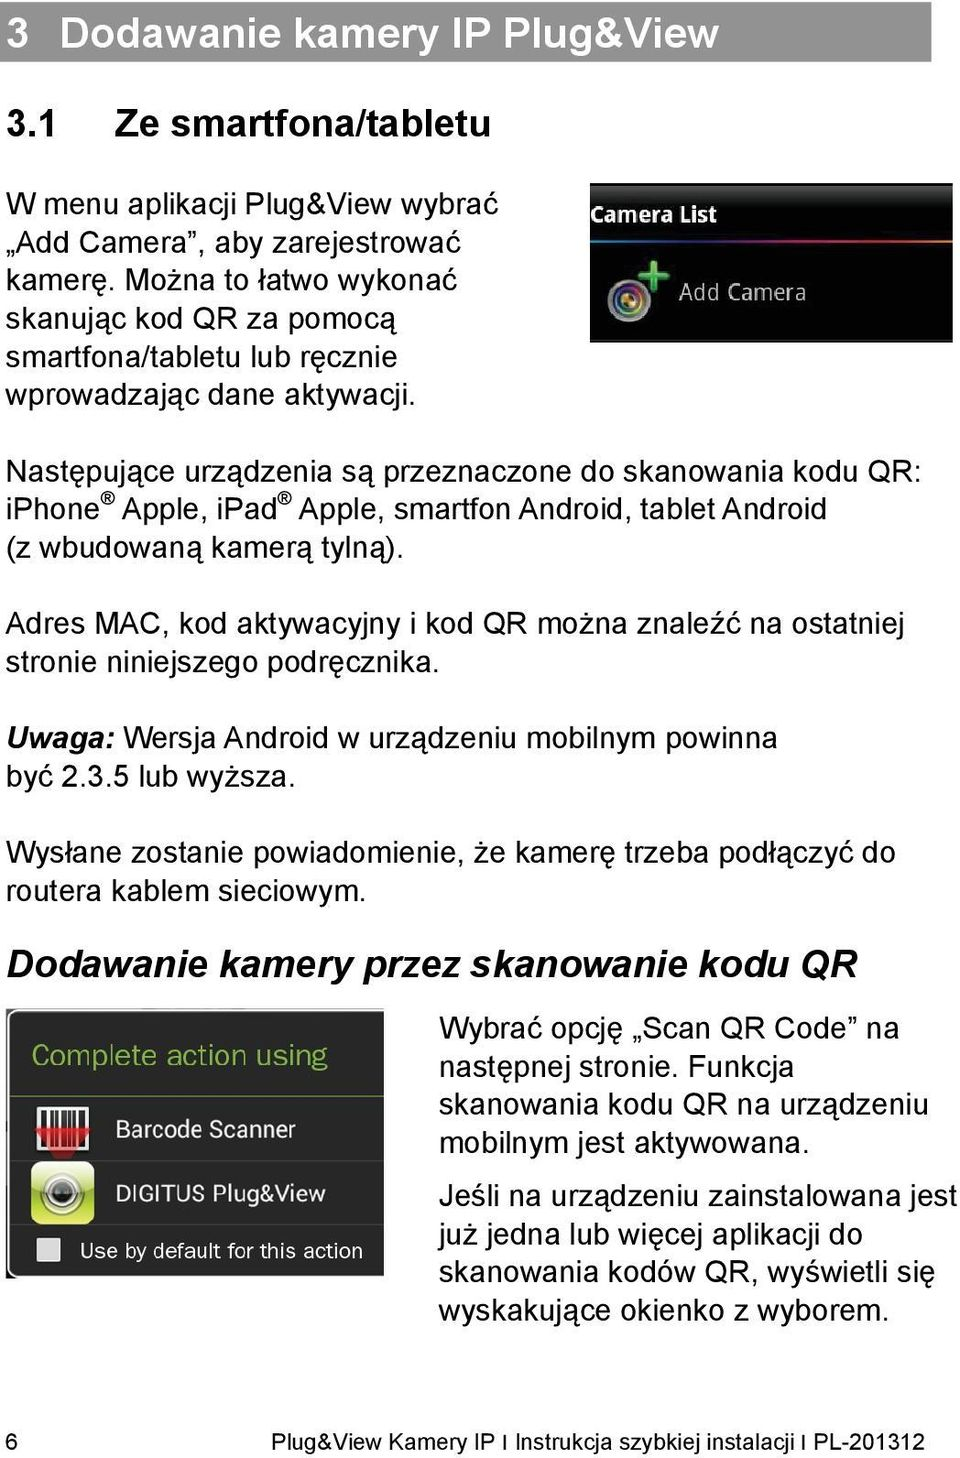 Następujące urządzenia są przeznaczone do skanowania kodu QR: iphone Apple, ipad Apple, smartfon Android, tablet Android (z wbudowaną kamerą tylną).